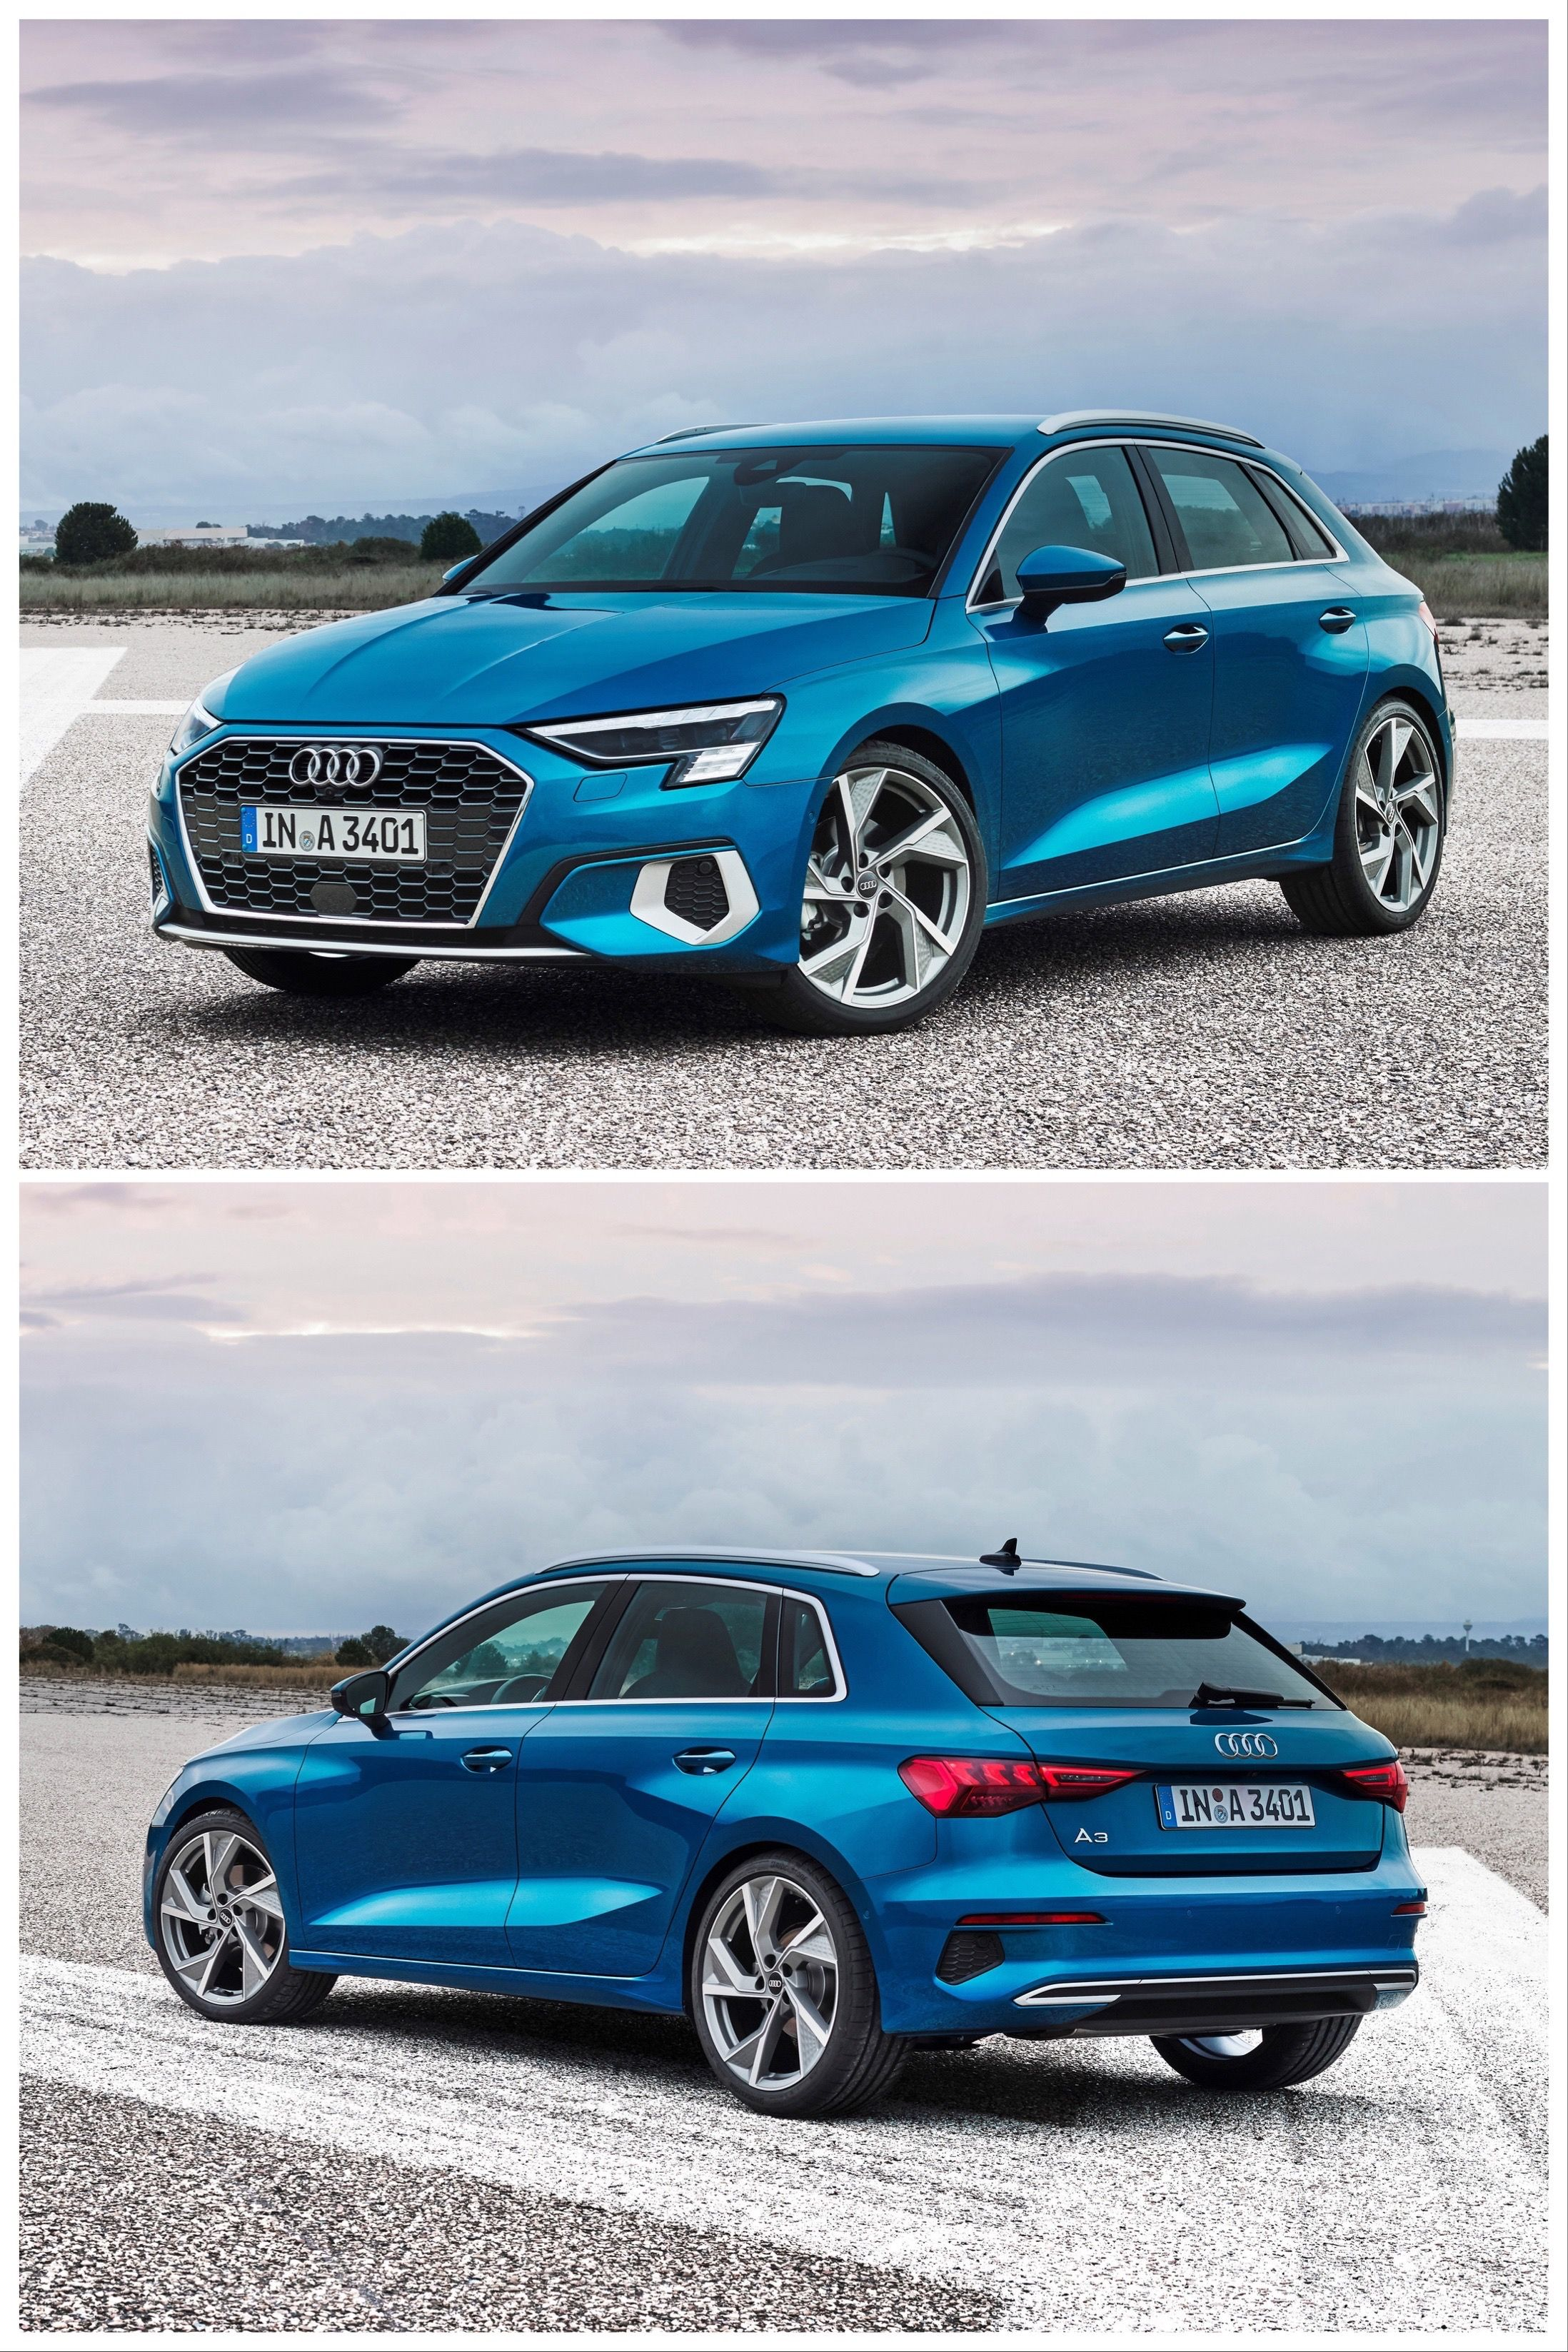 The 2021 Audi A3 Sportback Gets Tweaked and Looks Sweet in